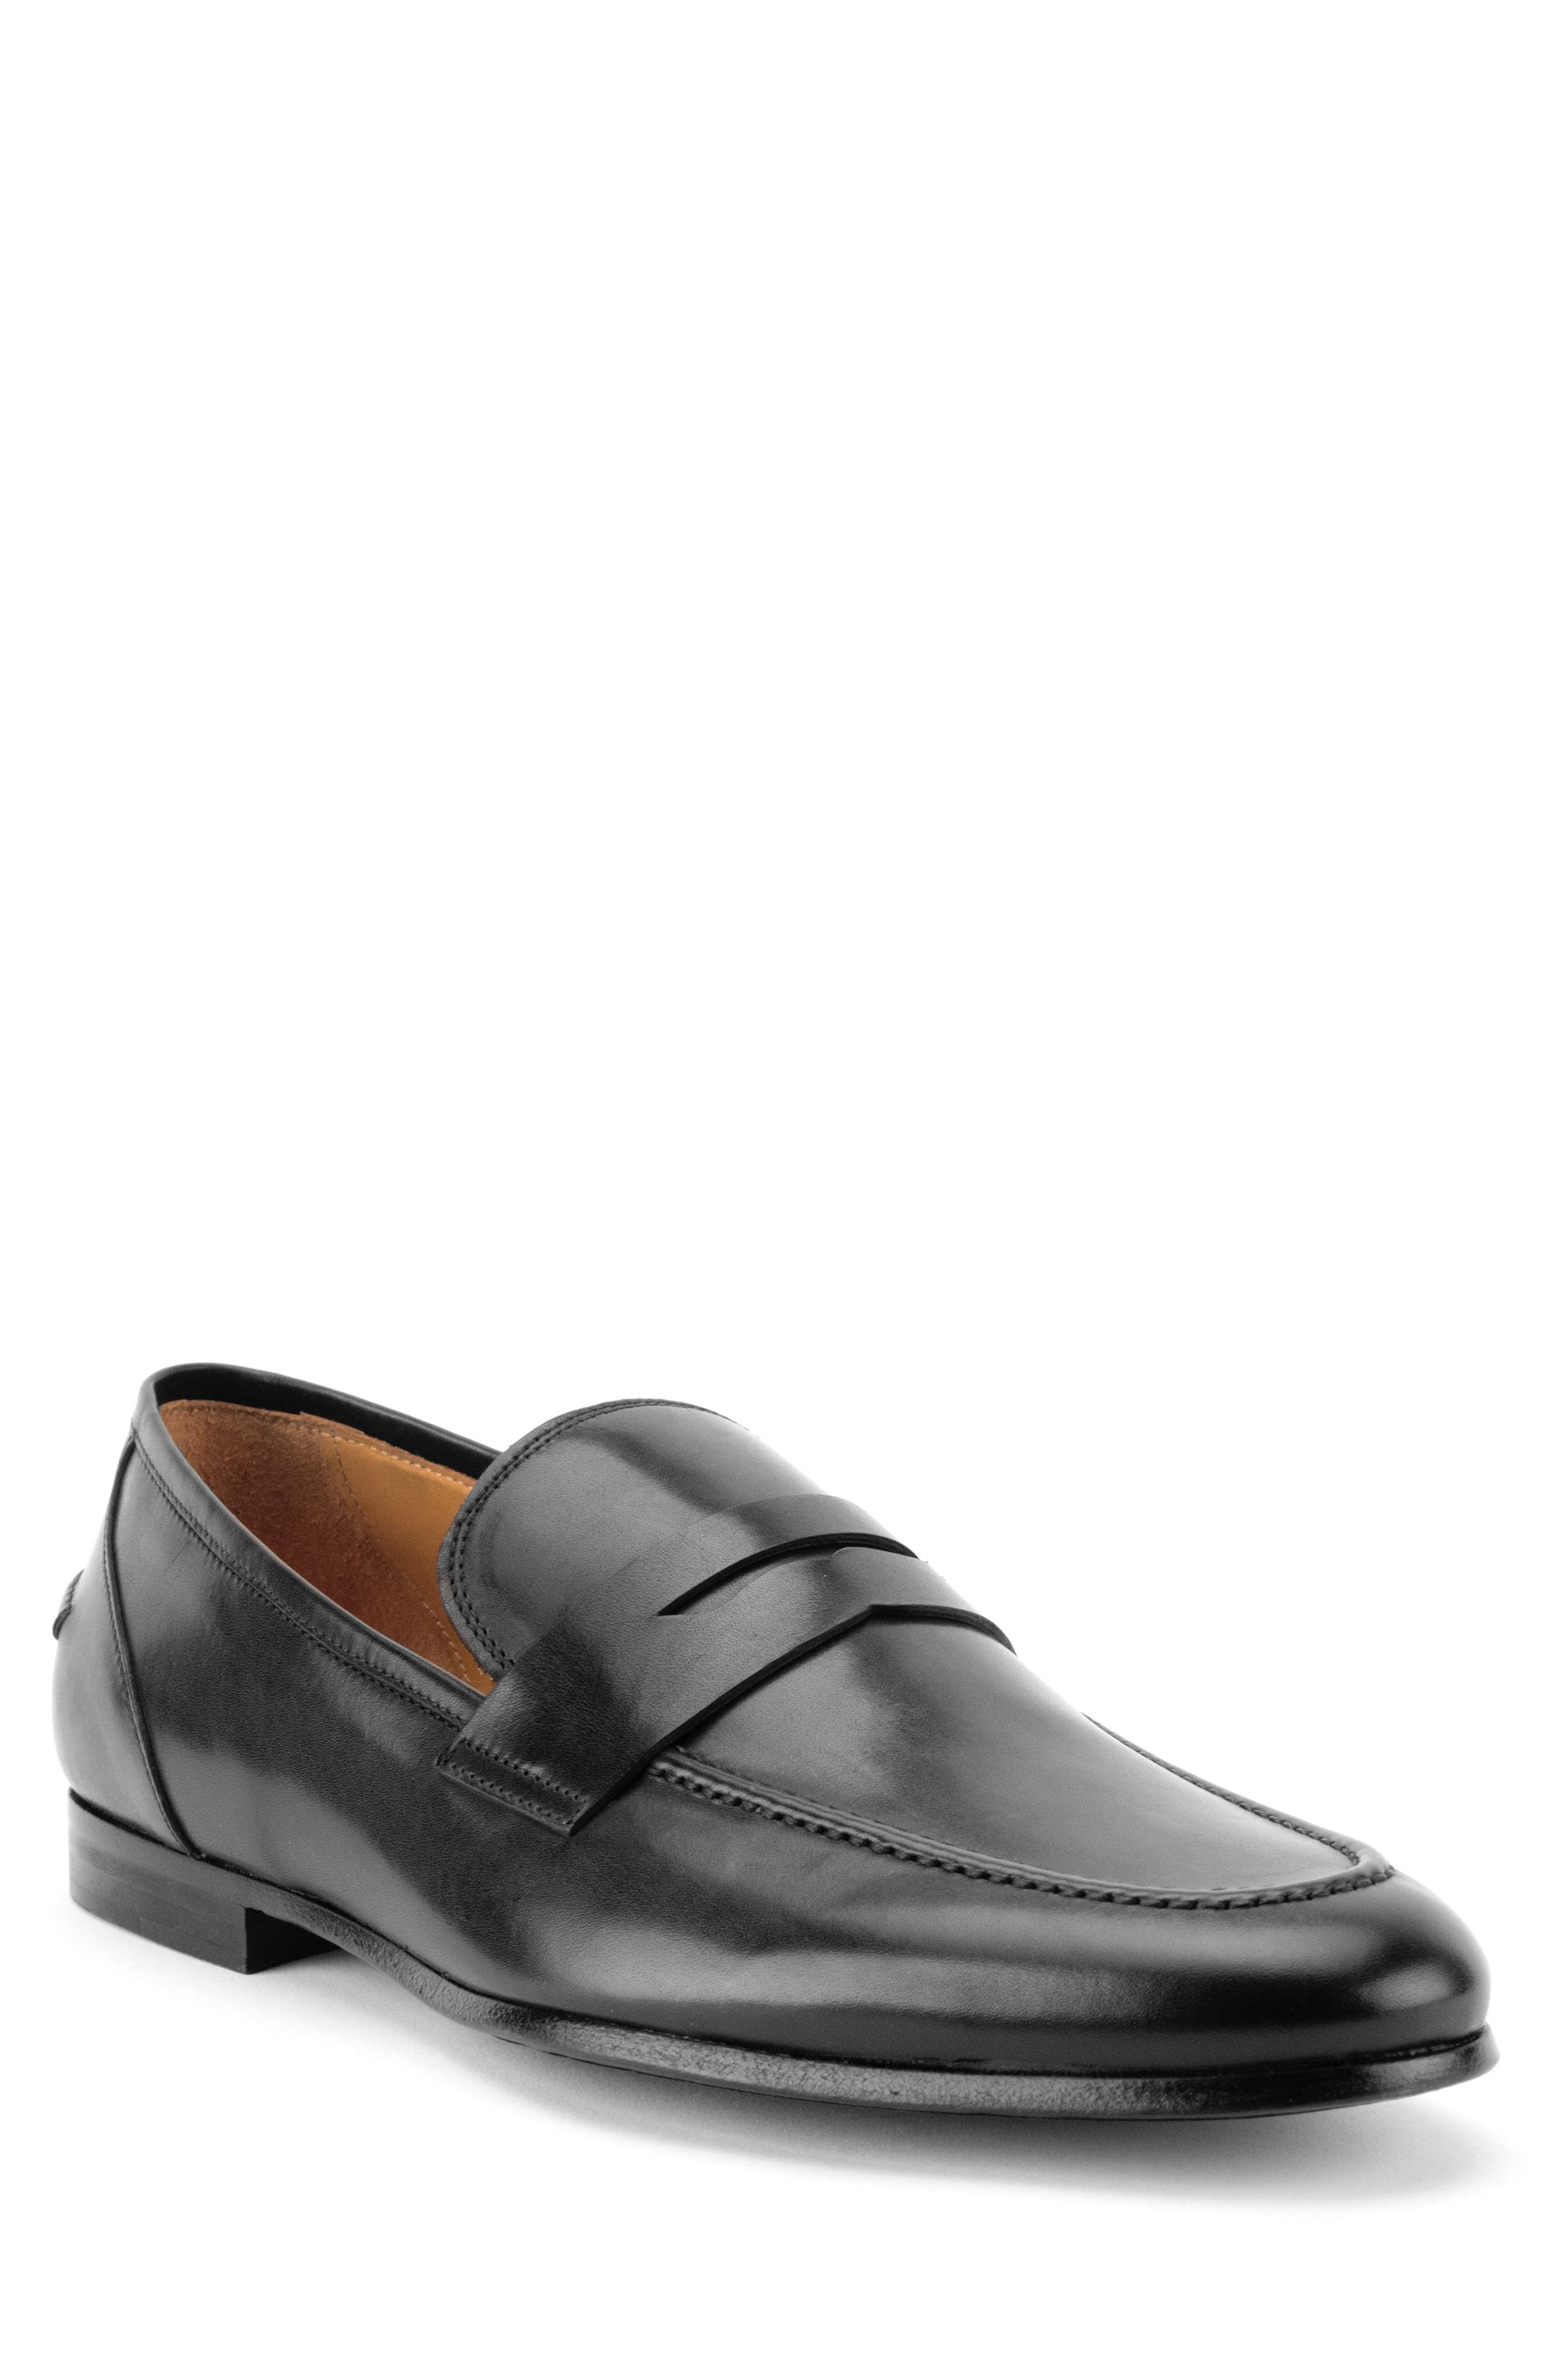 Coleman Apron Toe Penny Loafer,                         Main,                         color, BLACK LEATHER